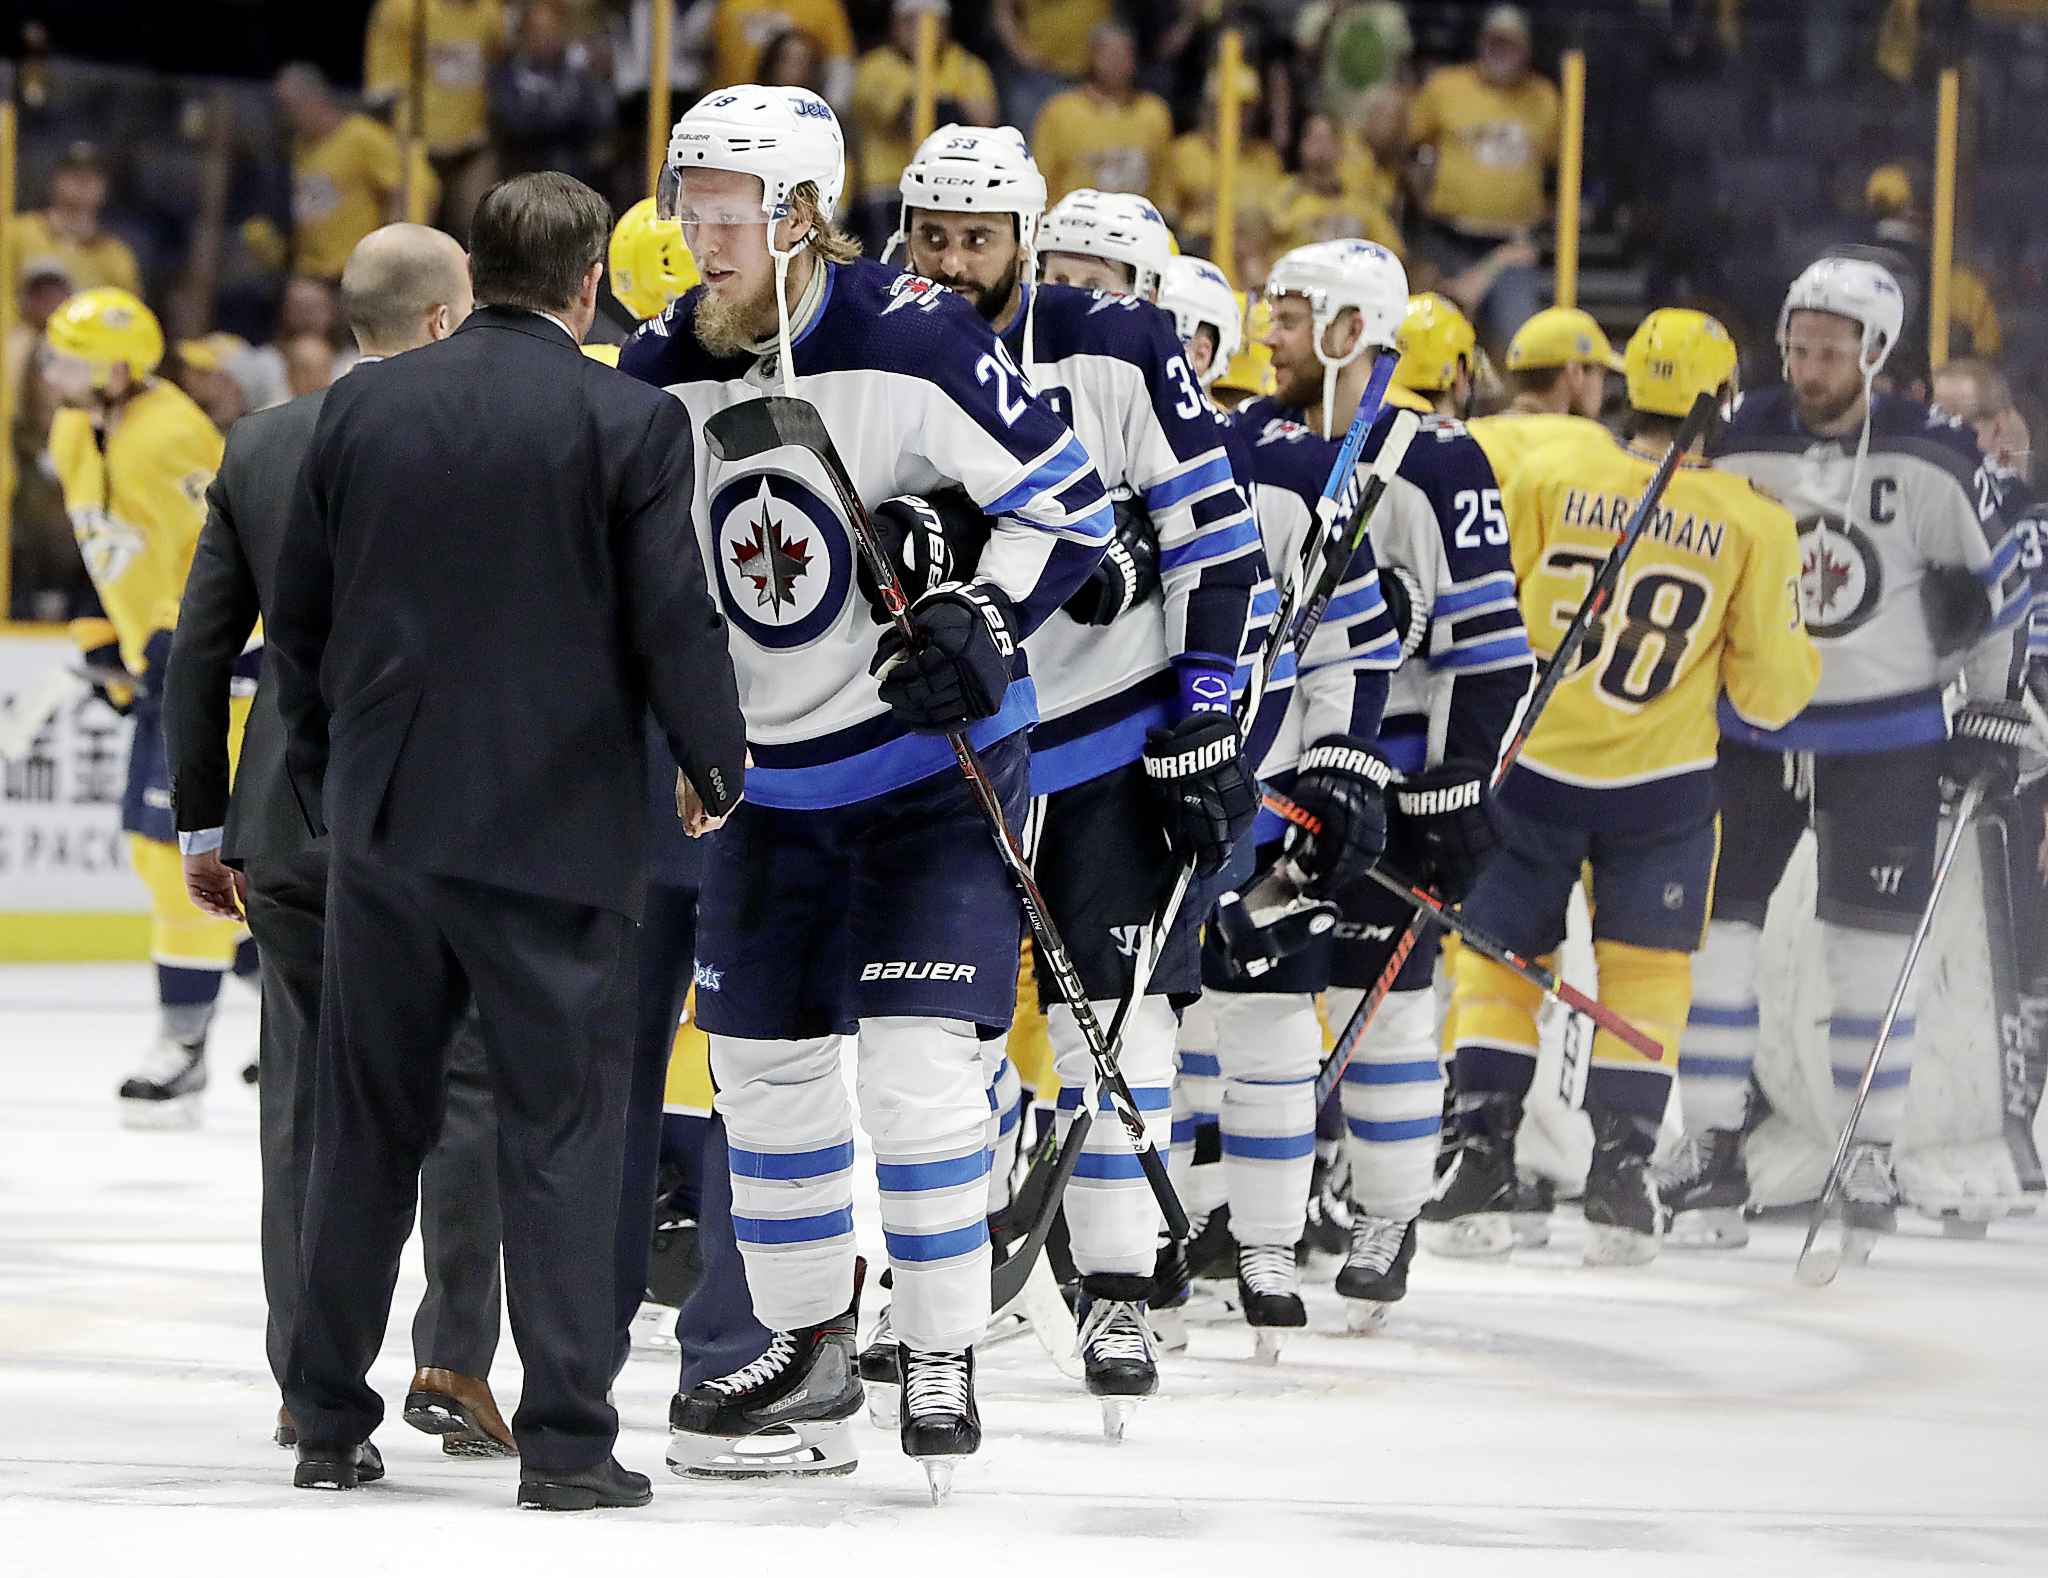 Winnipeg Jets right wing Patrik Laine (29), of Finland, shakes hands with Nashville Predators coach Peter Laviolette after Game 7 of an NHL hockey second-round playoff series Thursday, May 10, 2018, in Nashville, Tenn. The Jets won 5-1 and won the series. (AP Photo/Mark Humphrey) (CP)